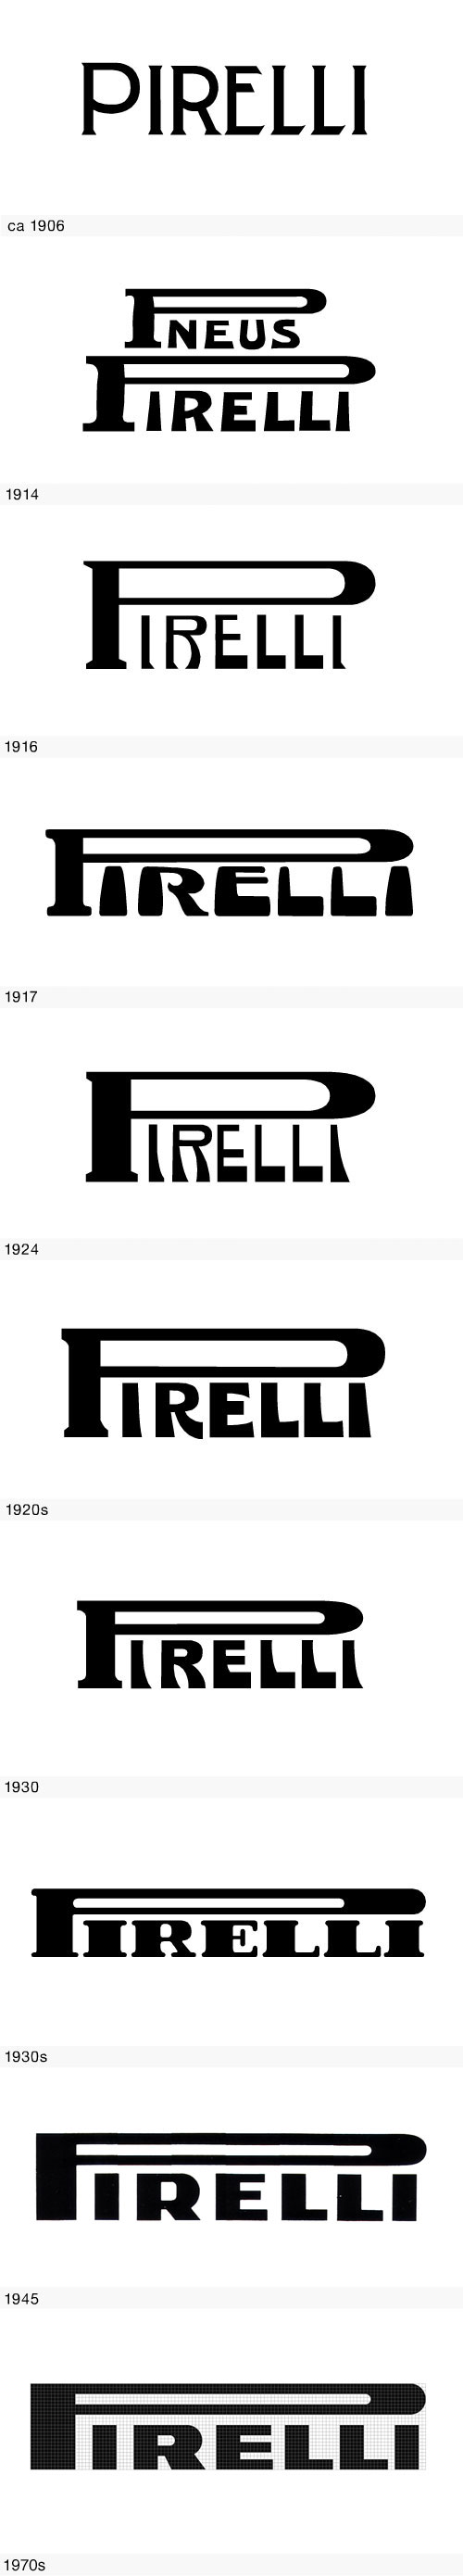 Pirelli logo evolution